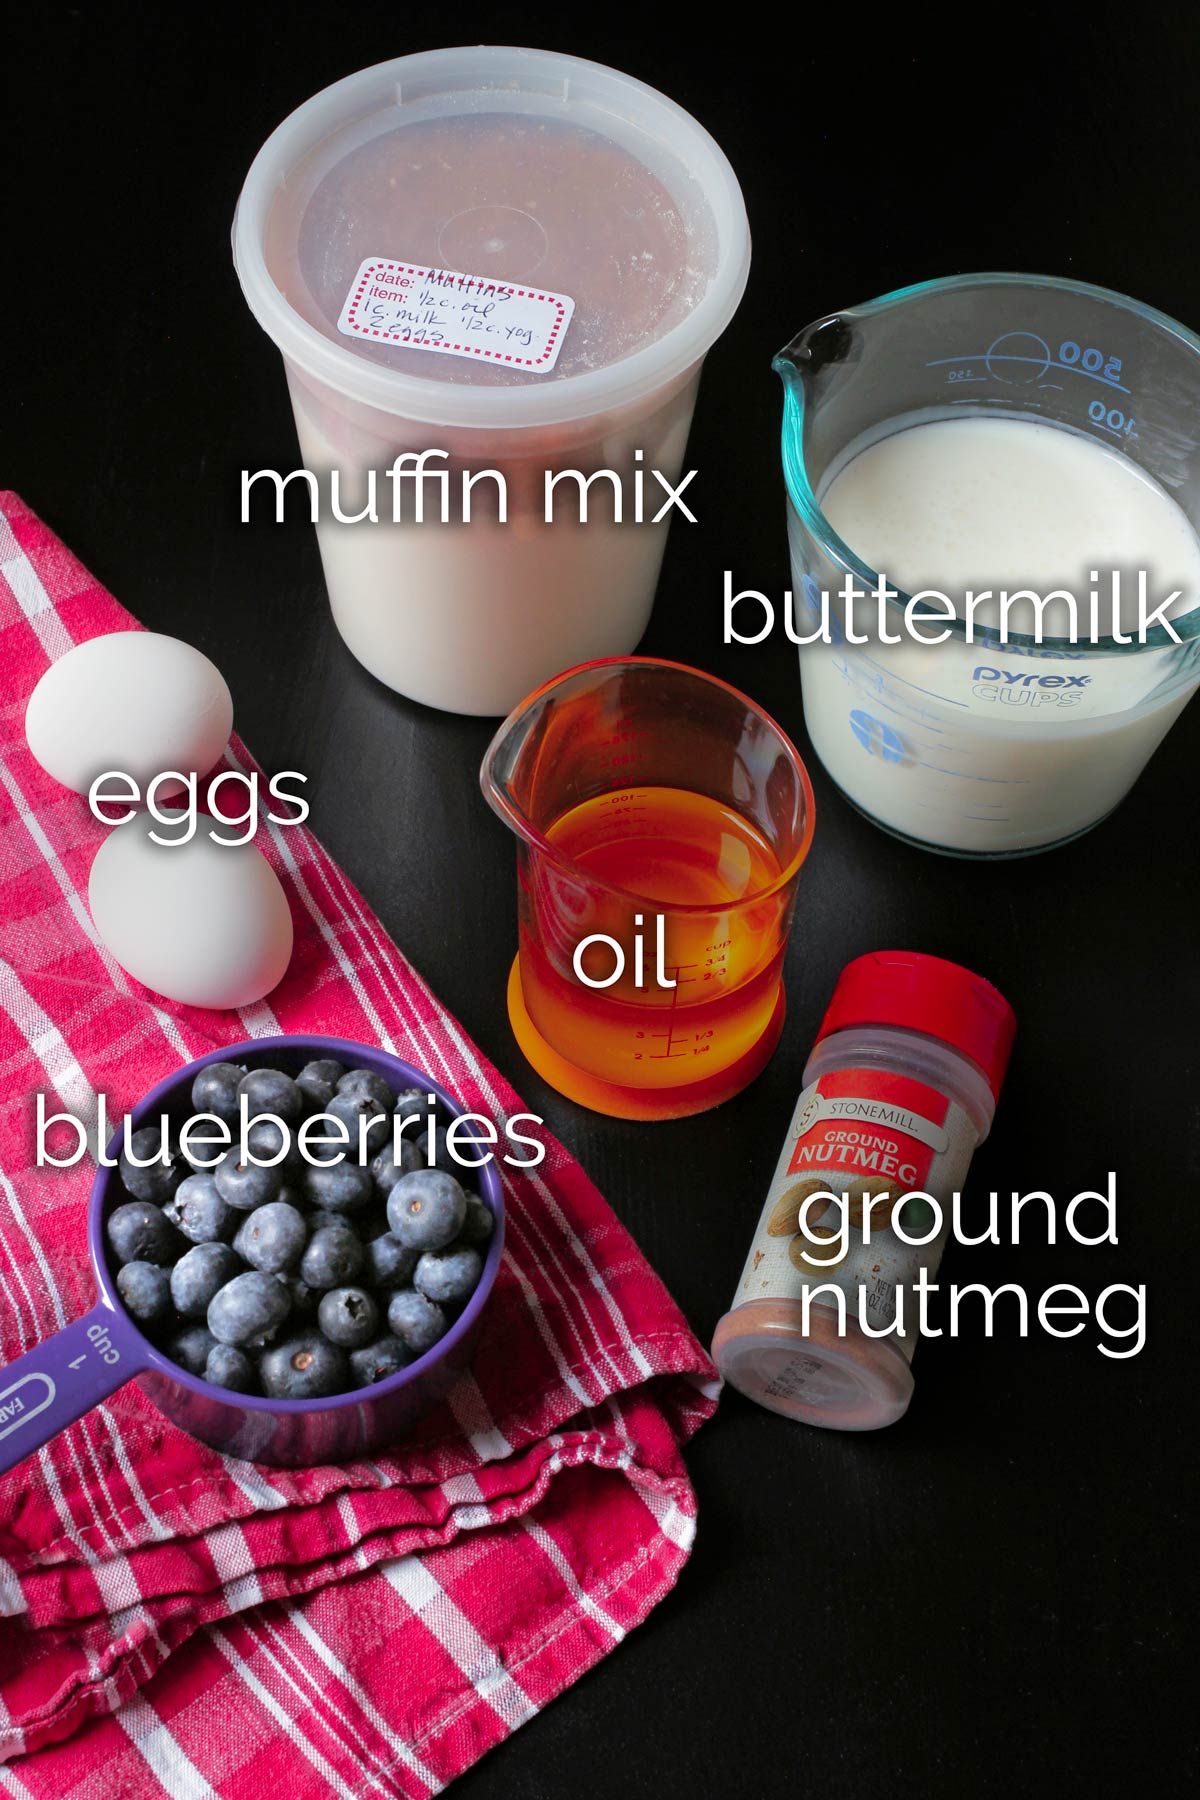 ingredients for blueberry muffins laid out on table on red cloth.